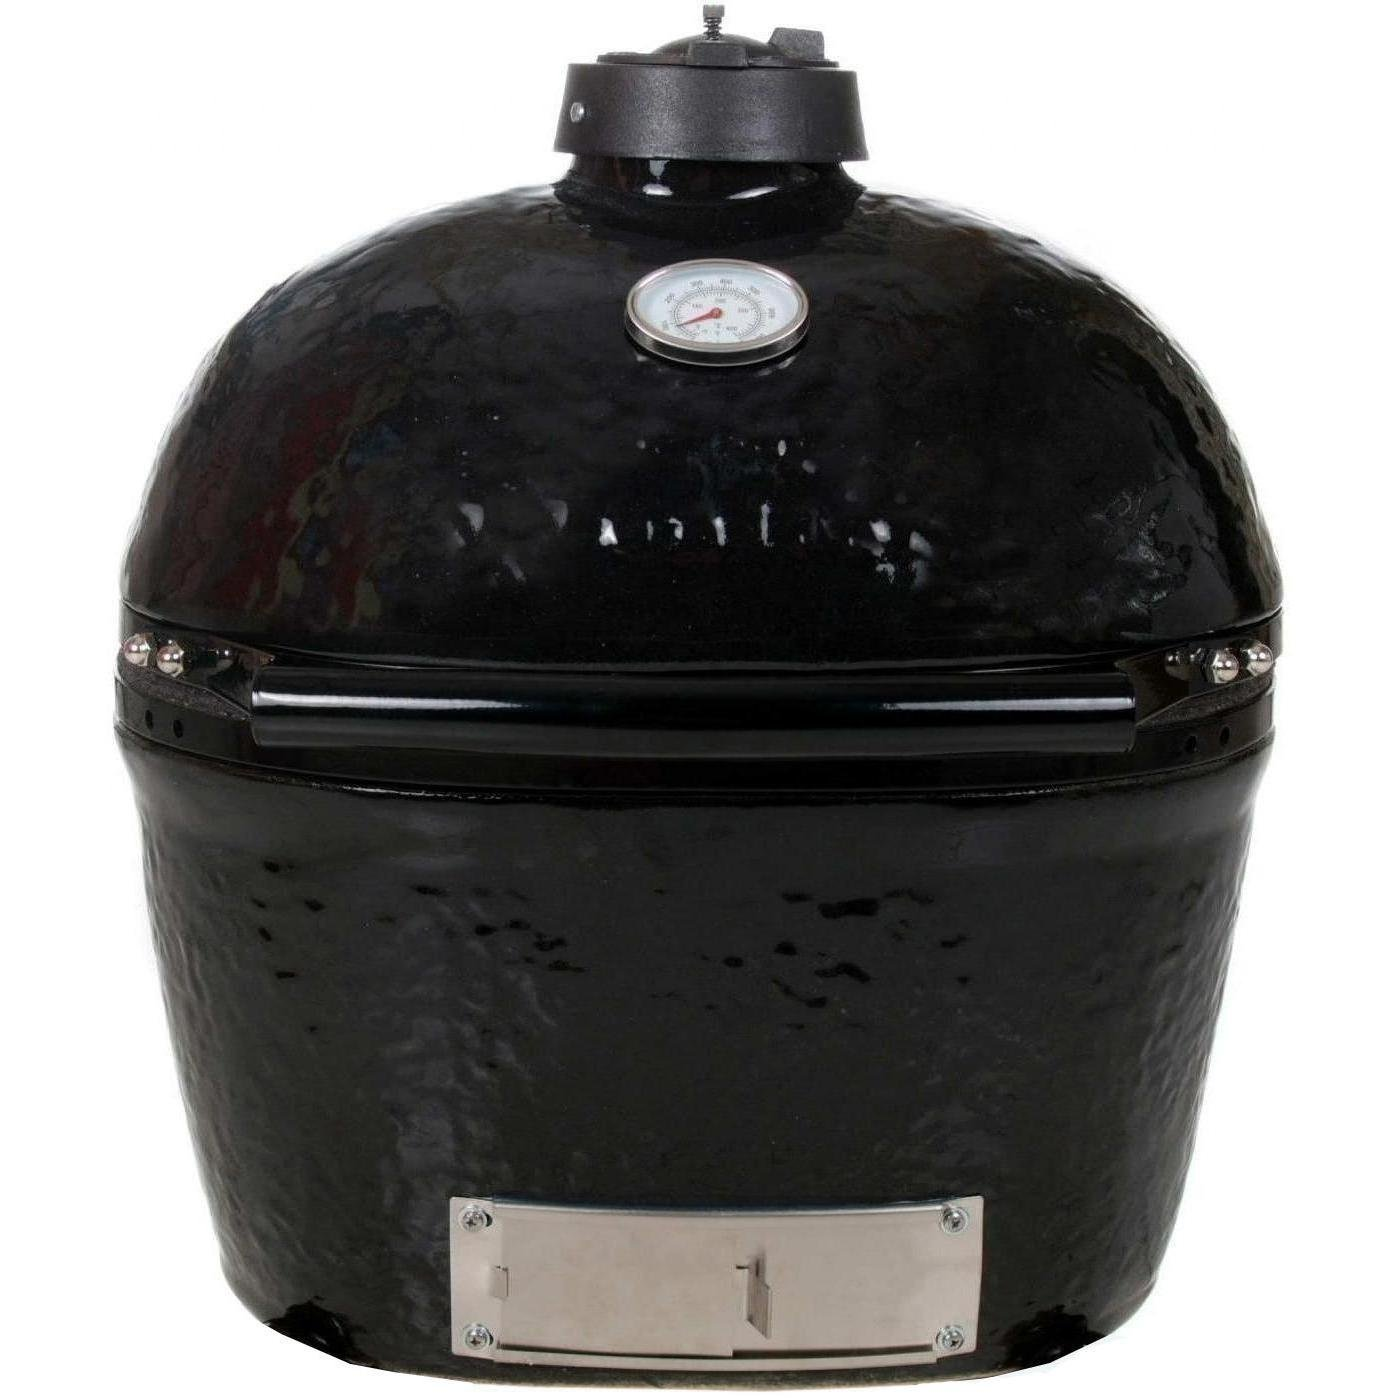 Primo 774 Ceramic Charcoal Smoker Grill